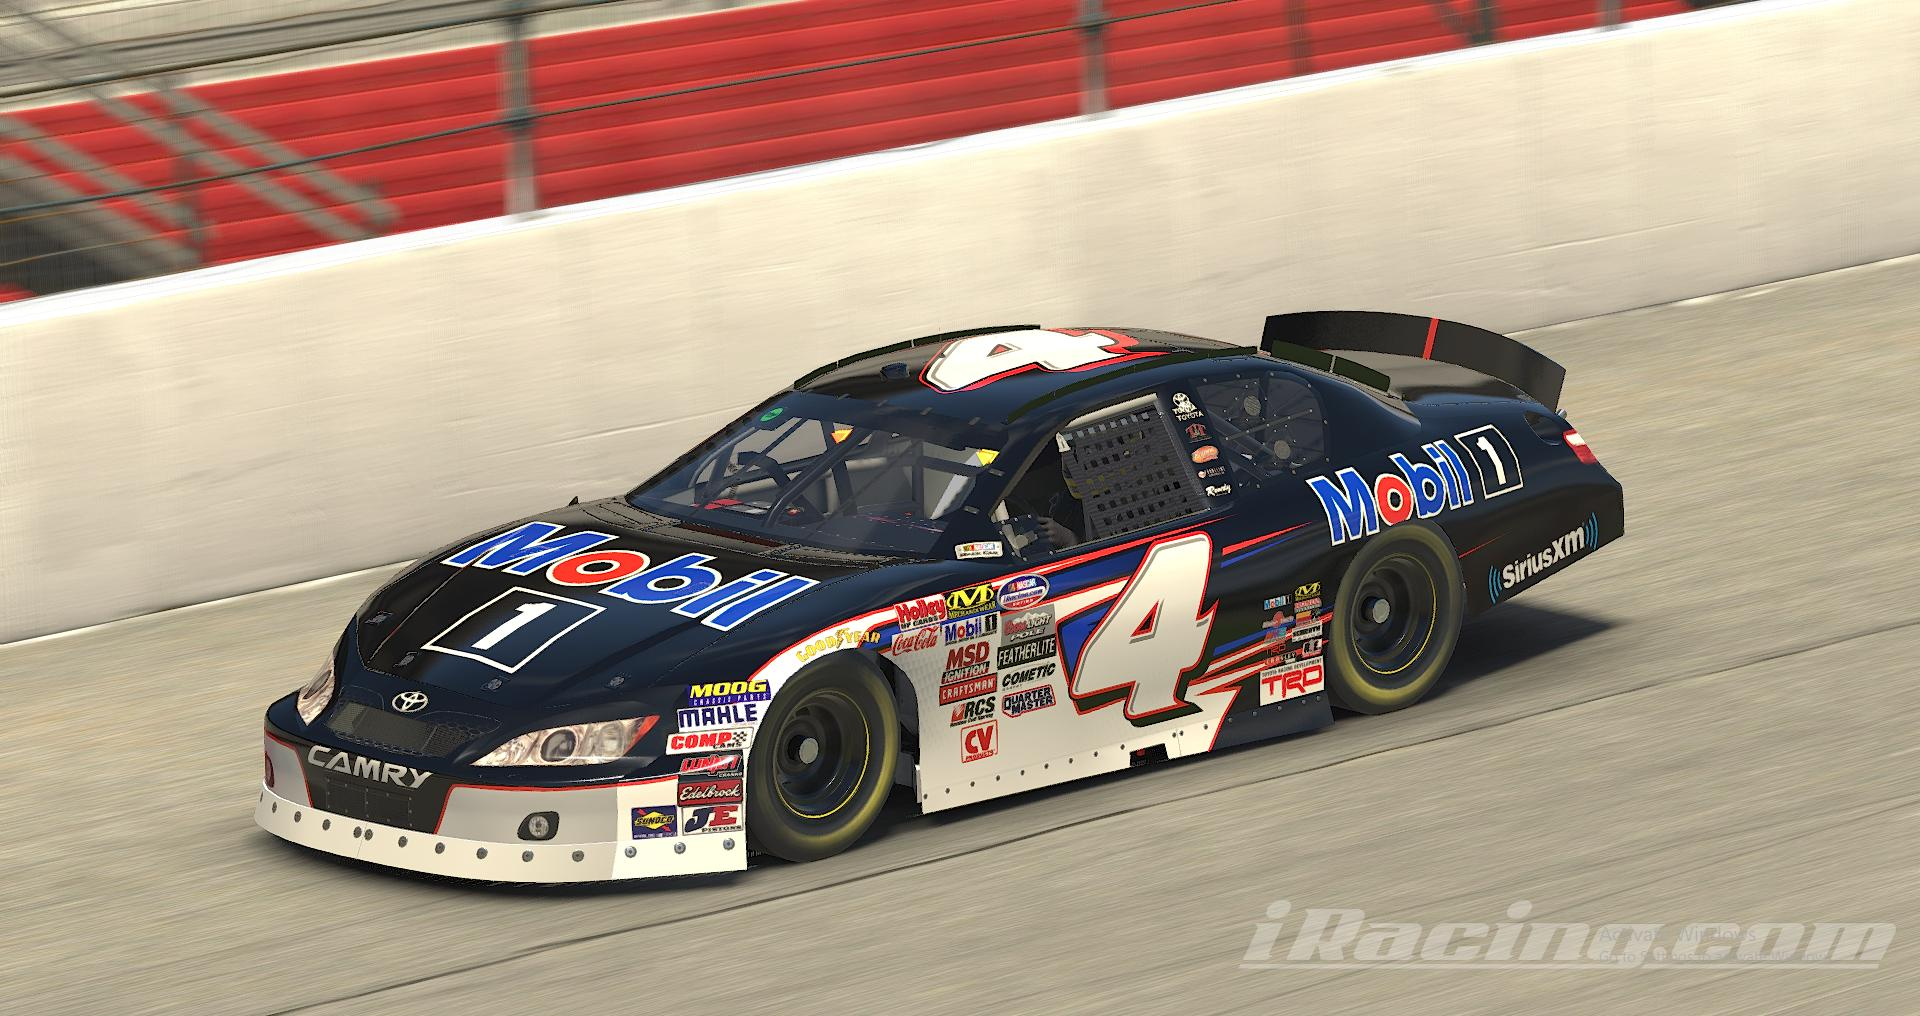 Preview of Mobil 1 K&N Toyota Camry (Todd Gilliland Inspired) by Erik Le